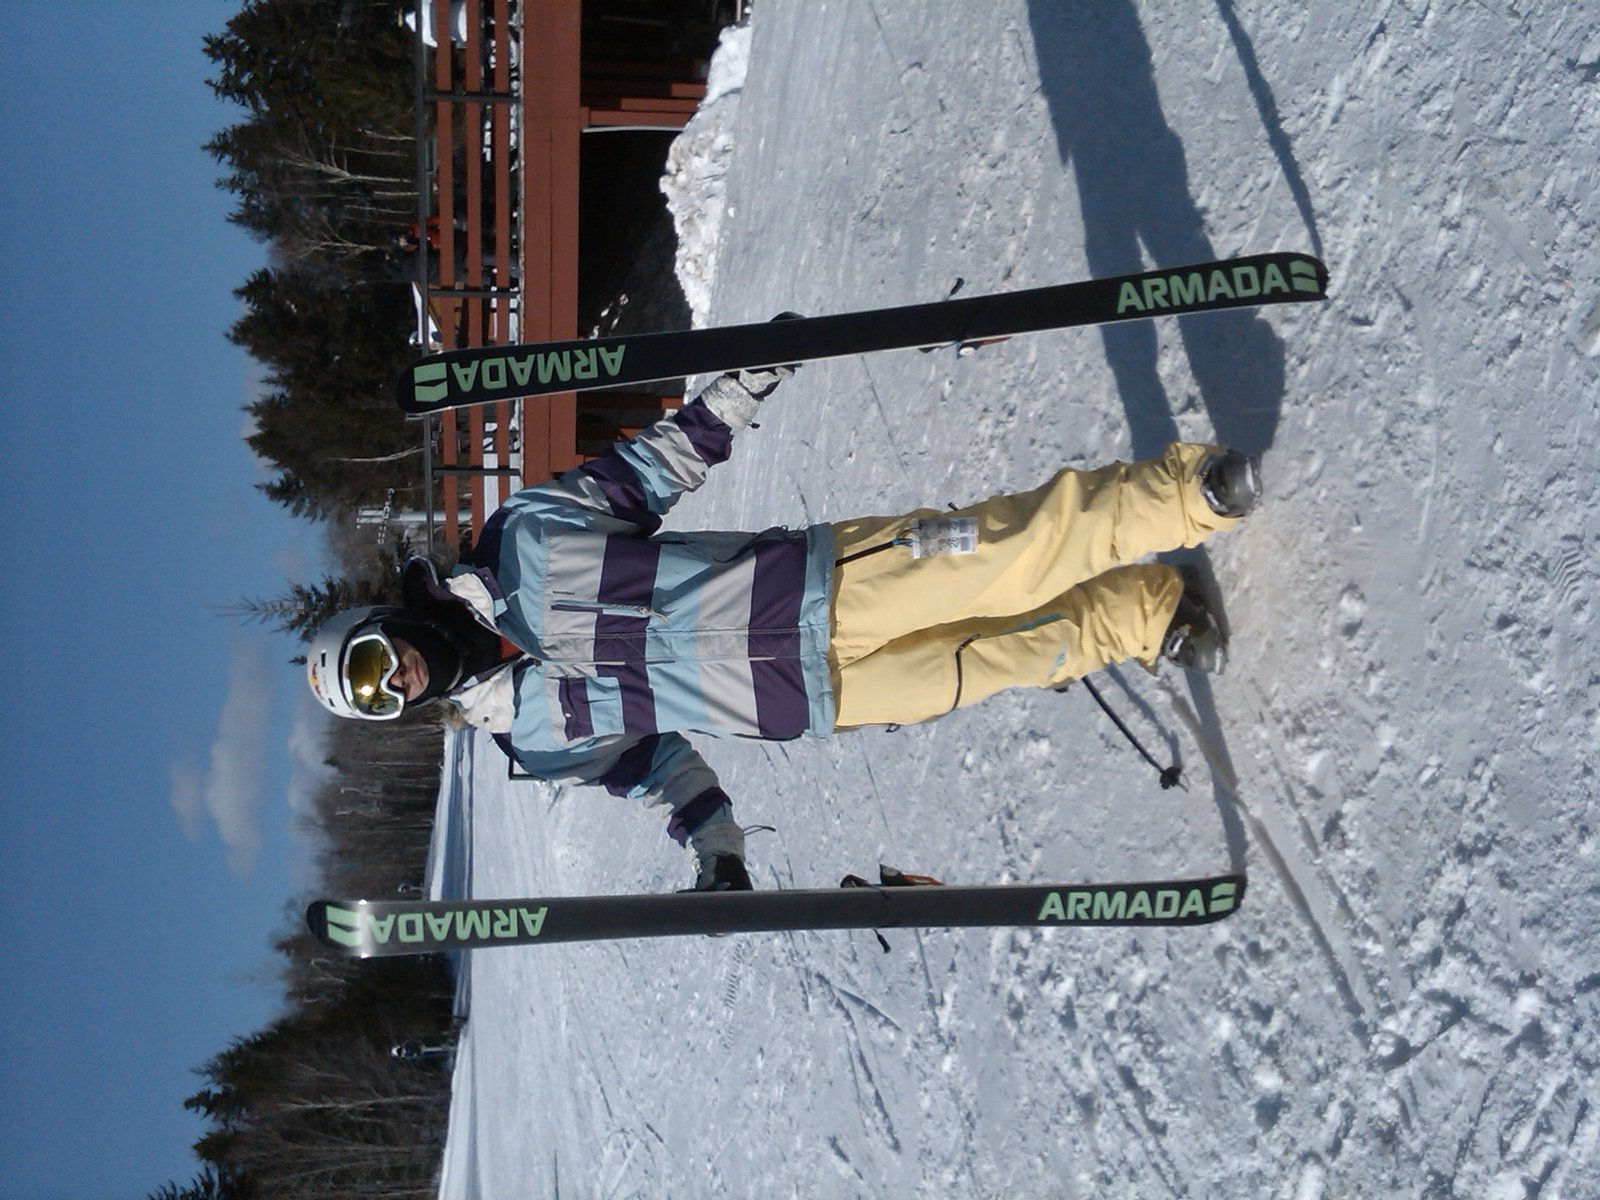 At mt. snow, cheesin pretty gay-like. Special Blend , Saga